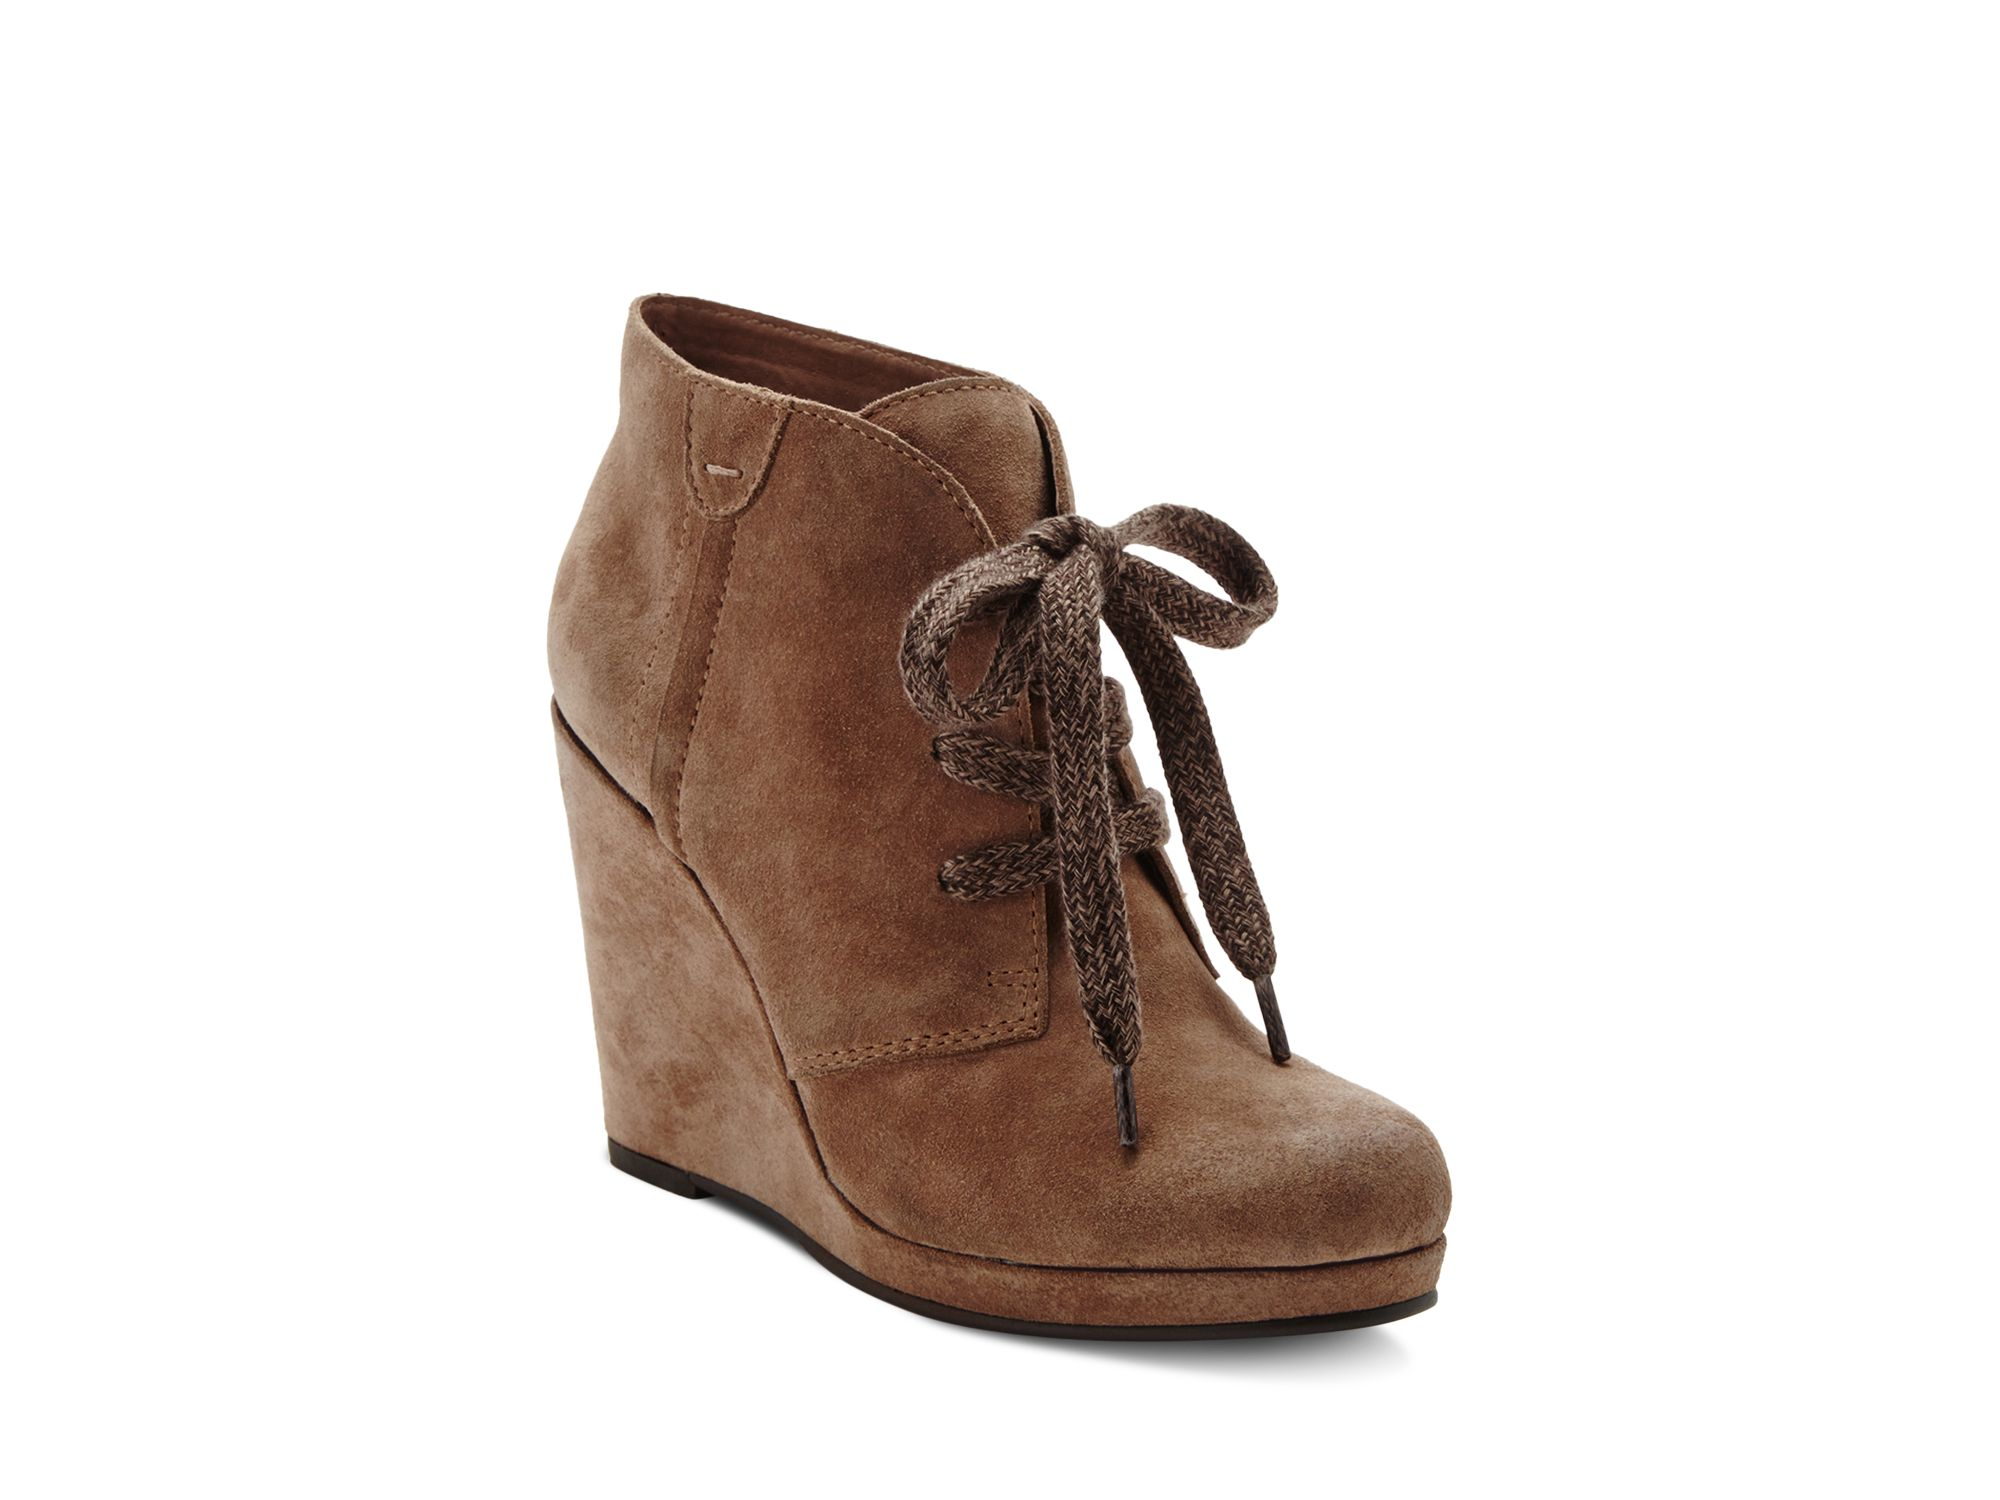 Dolce vita Gael Lace Up Wedge Booties in Brown | Lyst